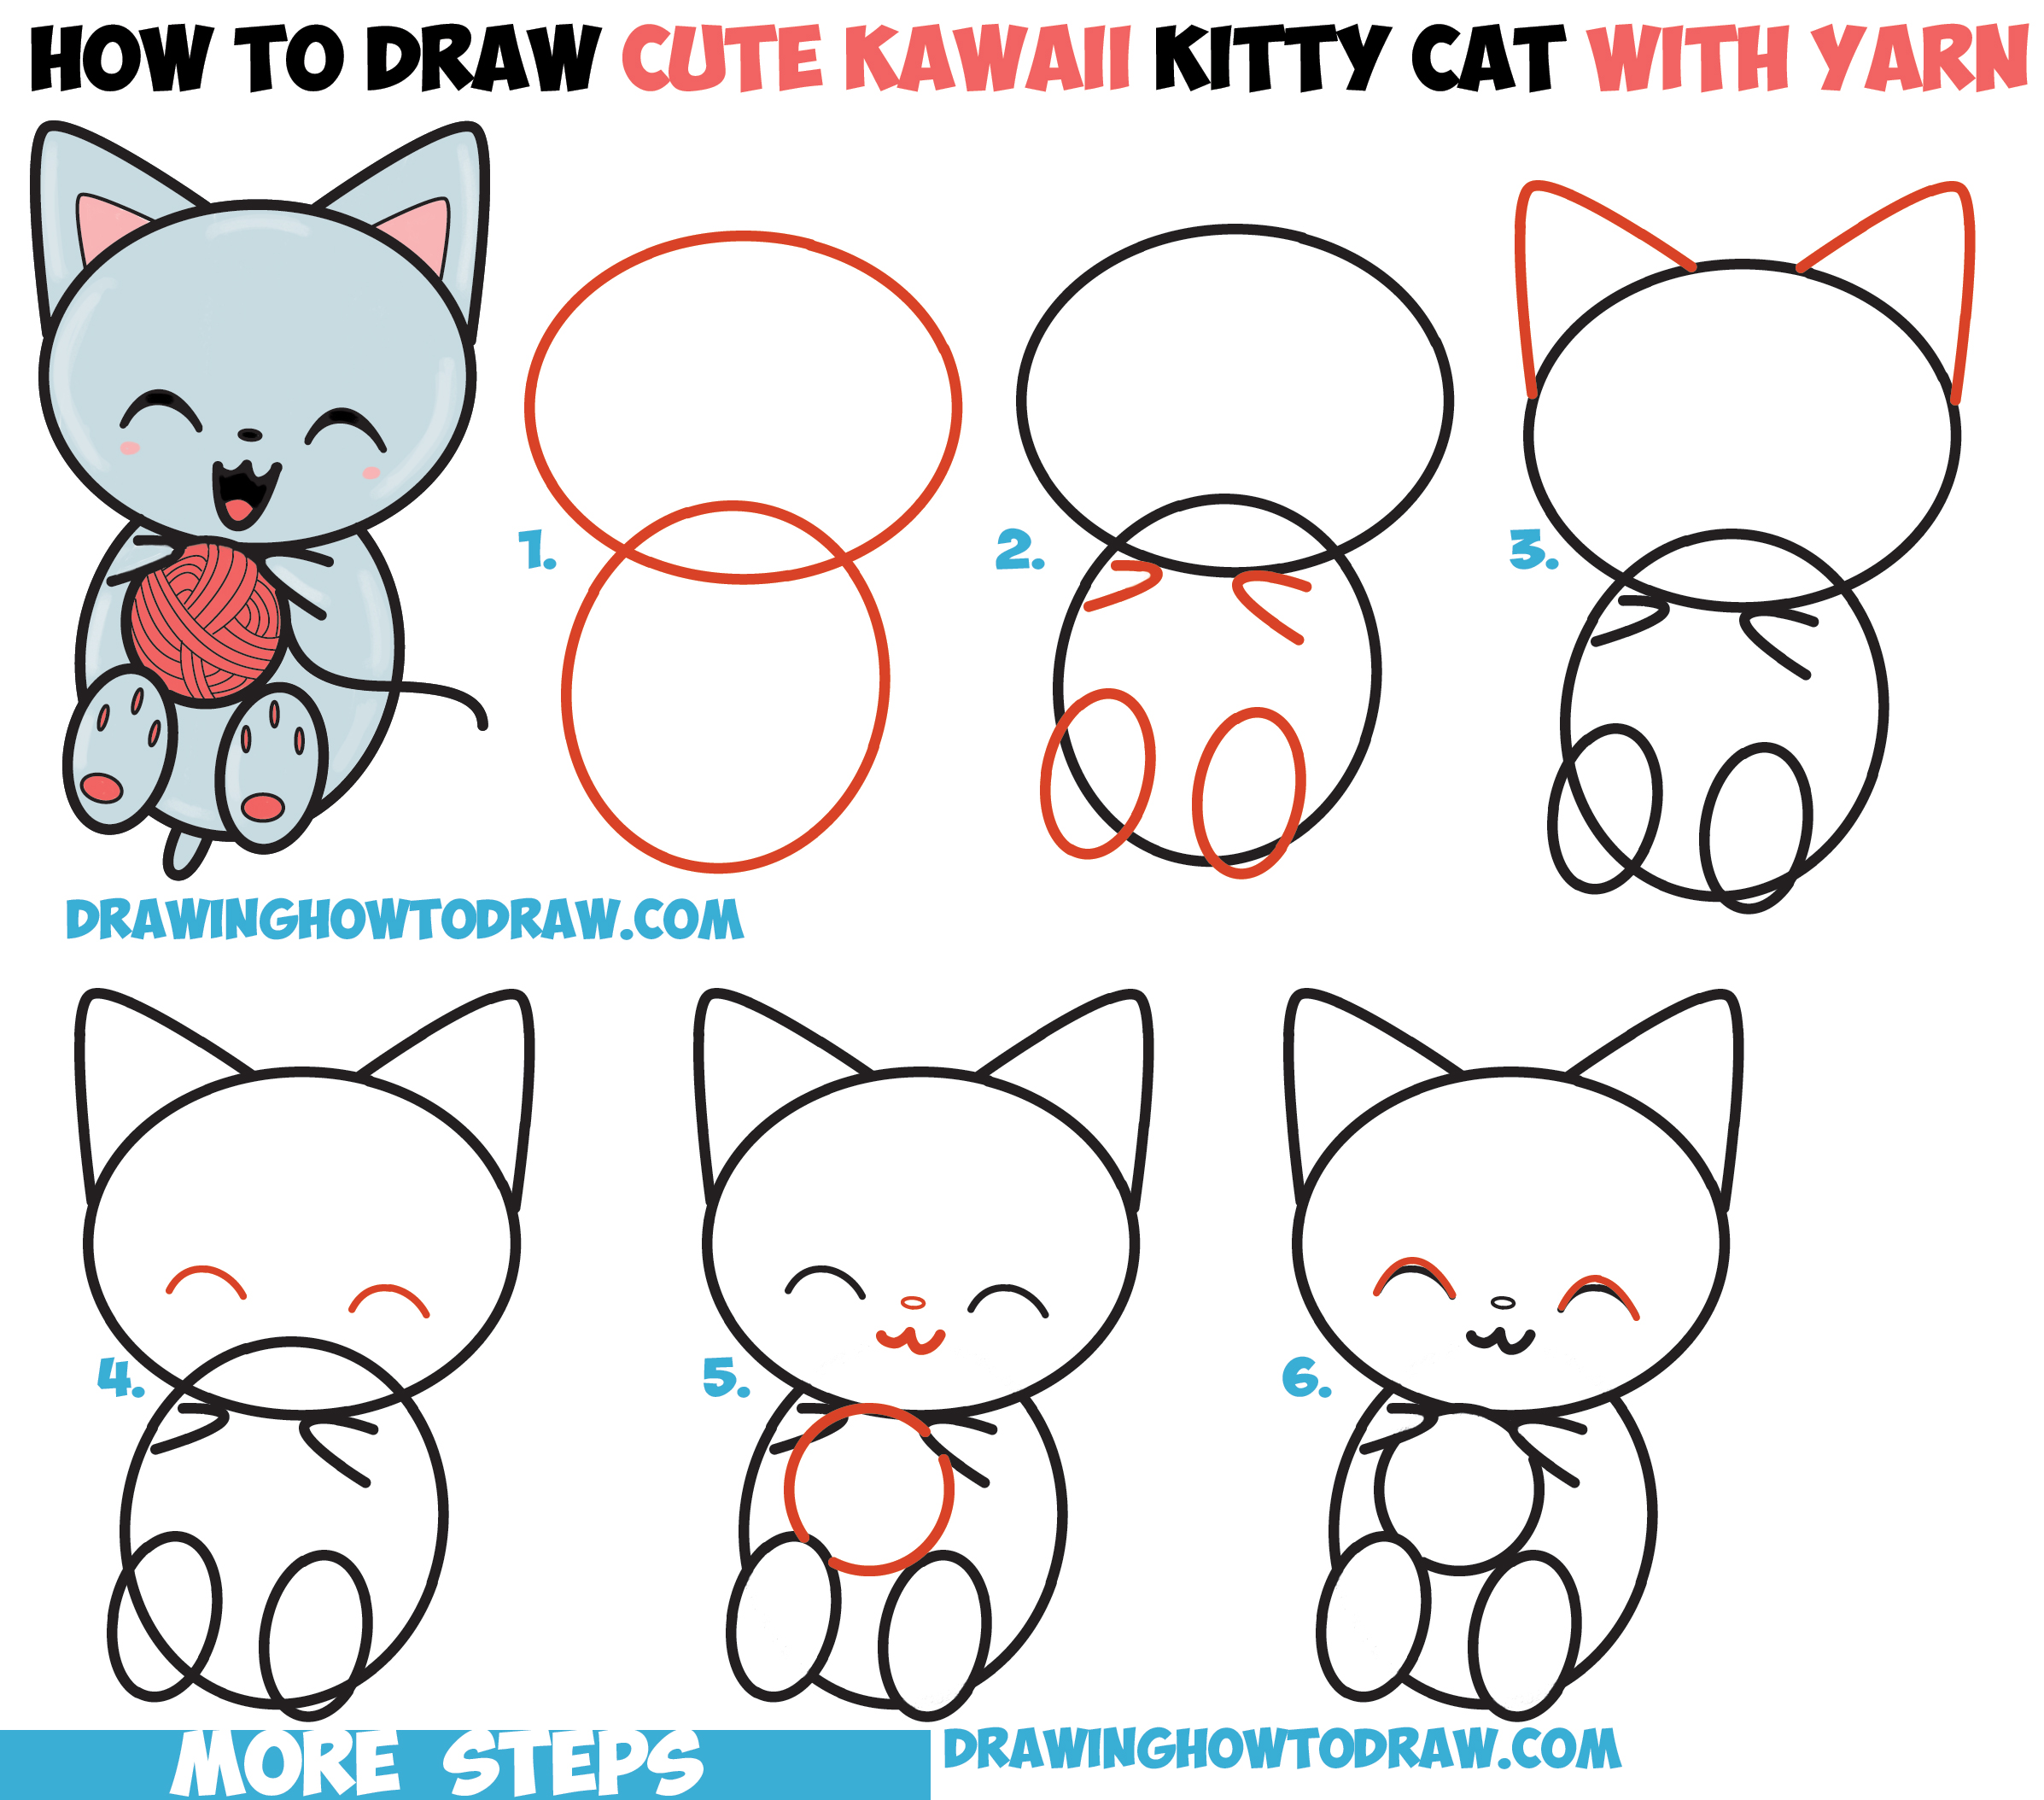 How to draw cute kawaii kitten cat playing with yarn for Good drawing tutorials for beginners